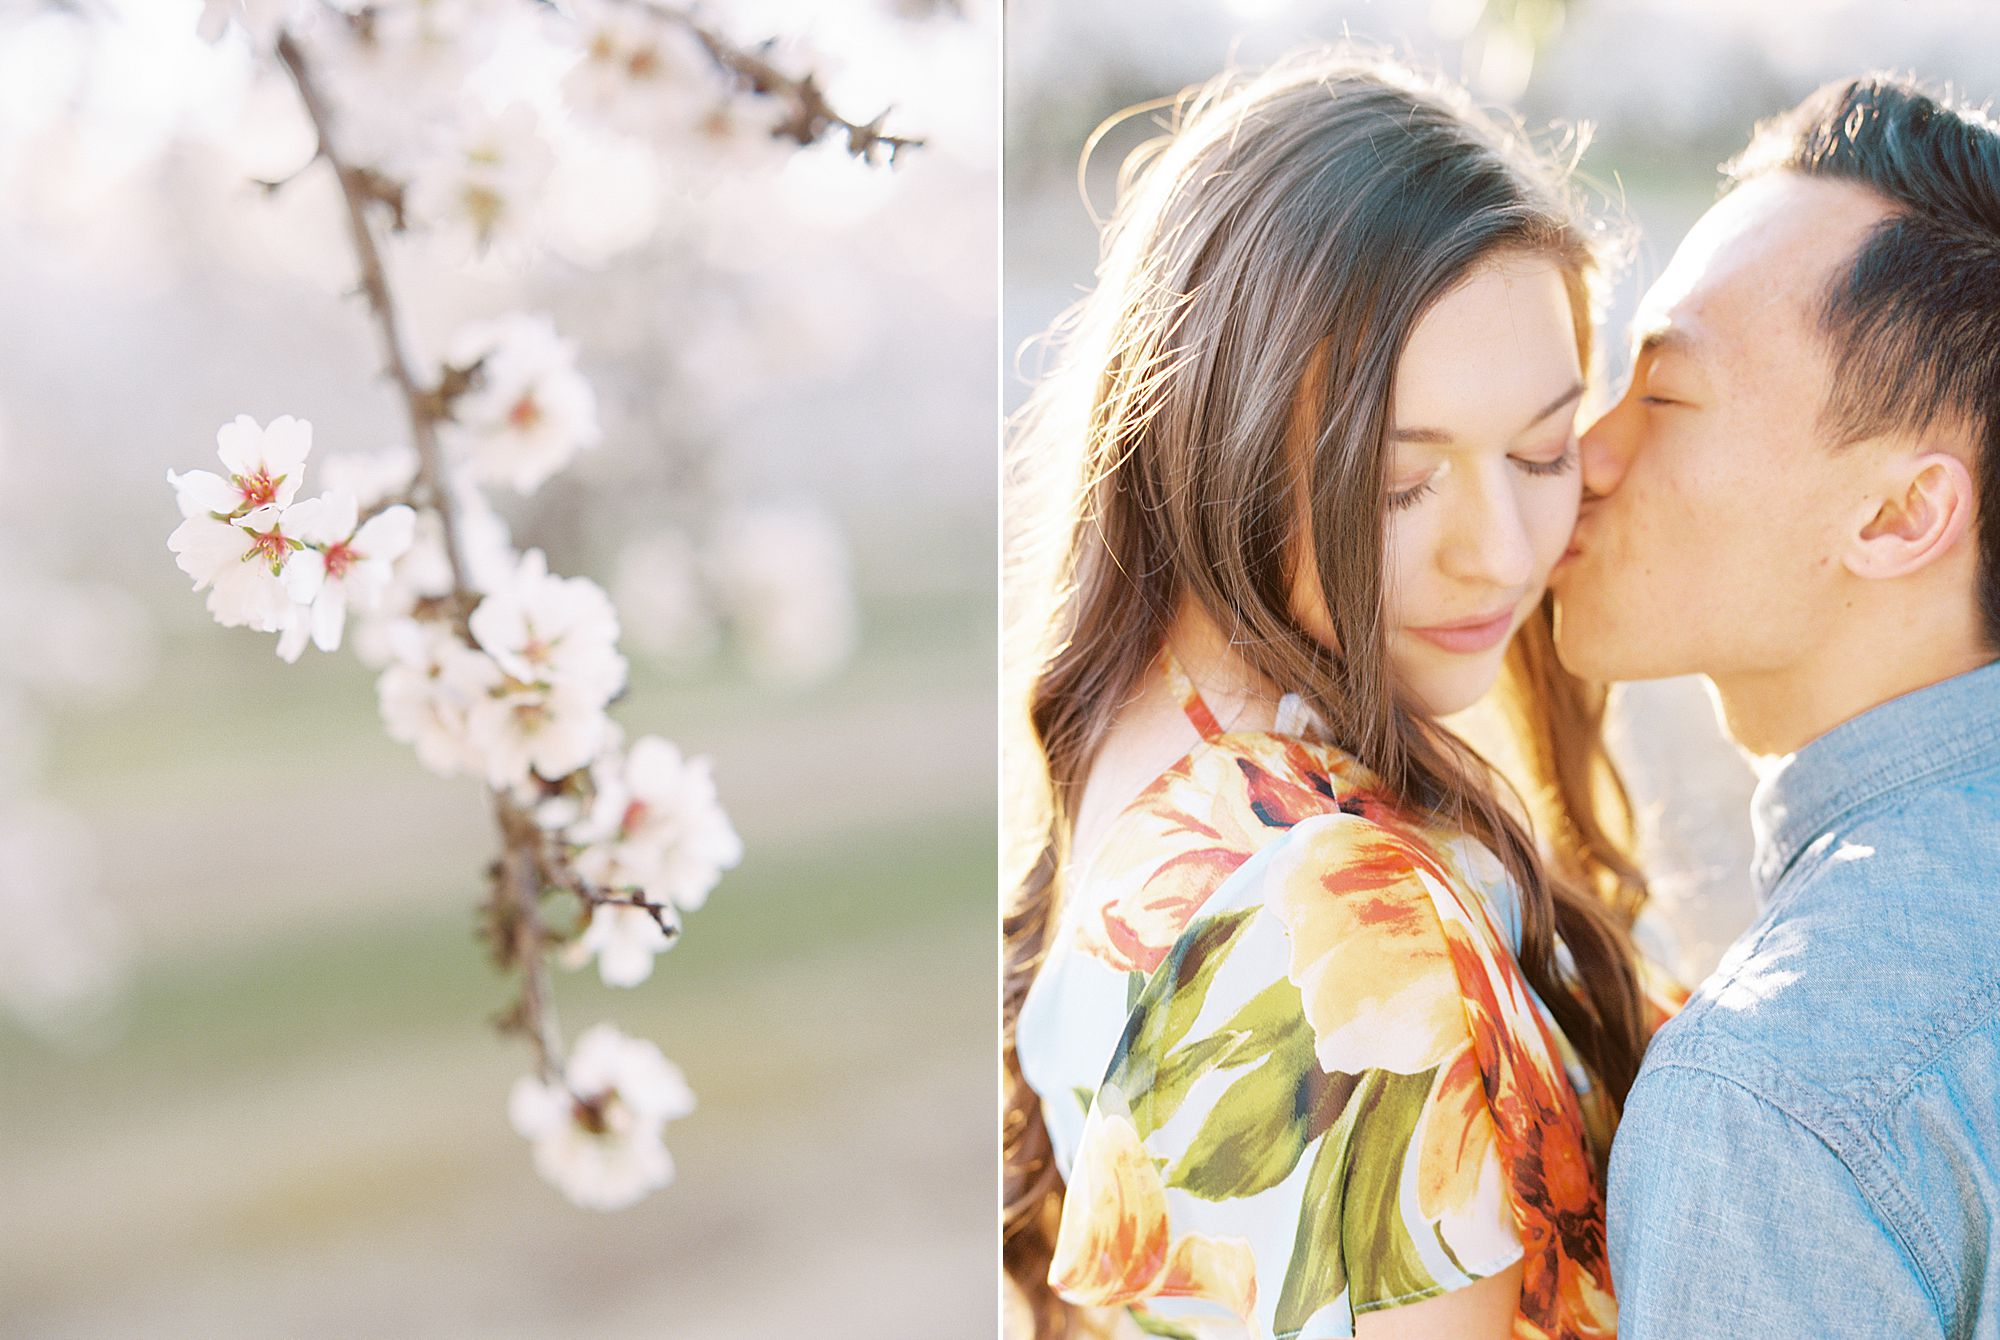 Almond Orchard Engagement Session - Caley and Tyler - Lone Oak Wedding - Ashley Baumgartner - Almond Blossom_0020.jpg